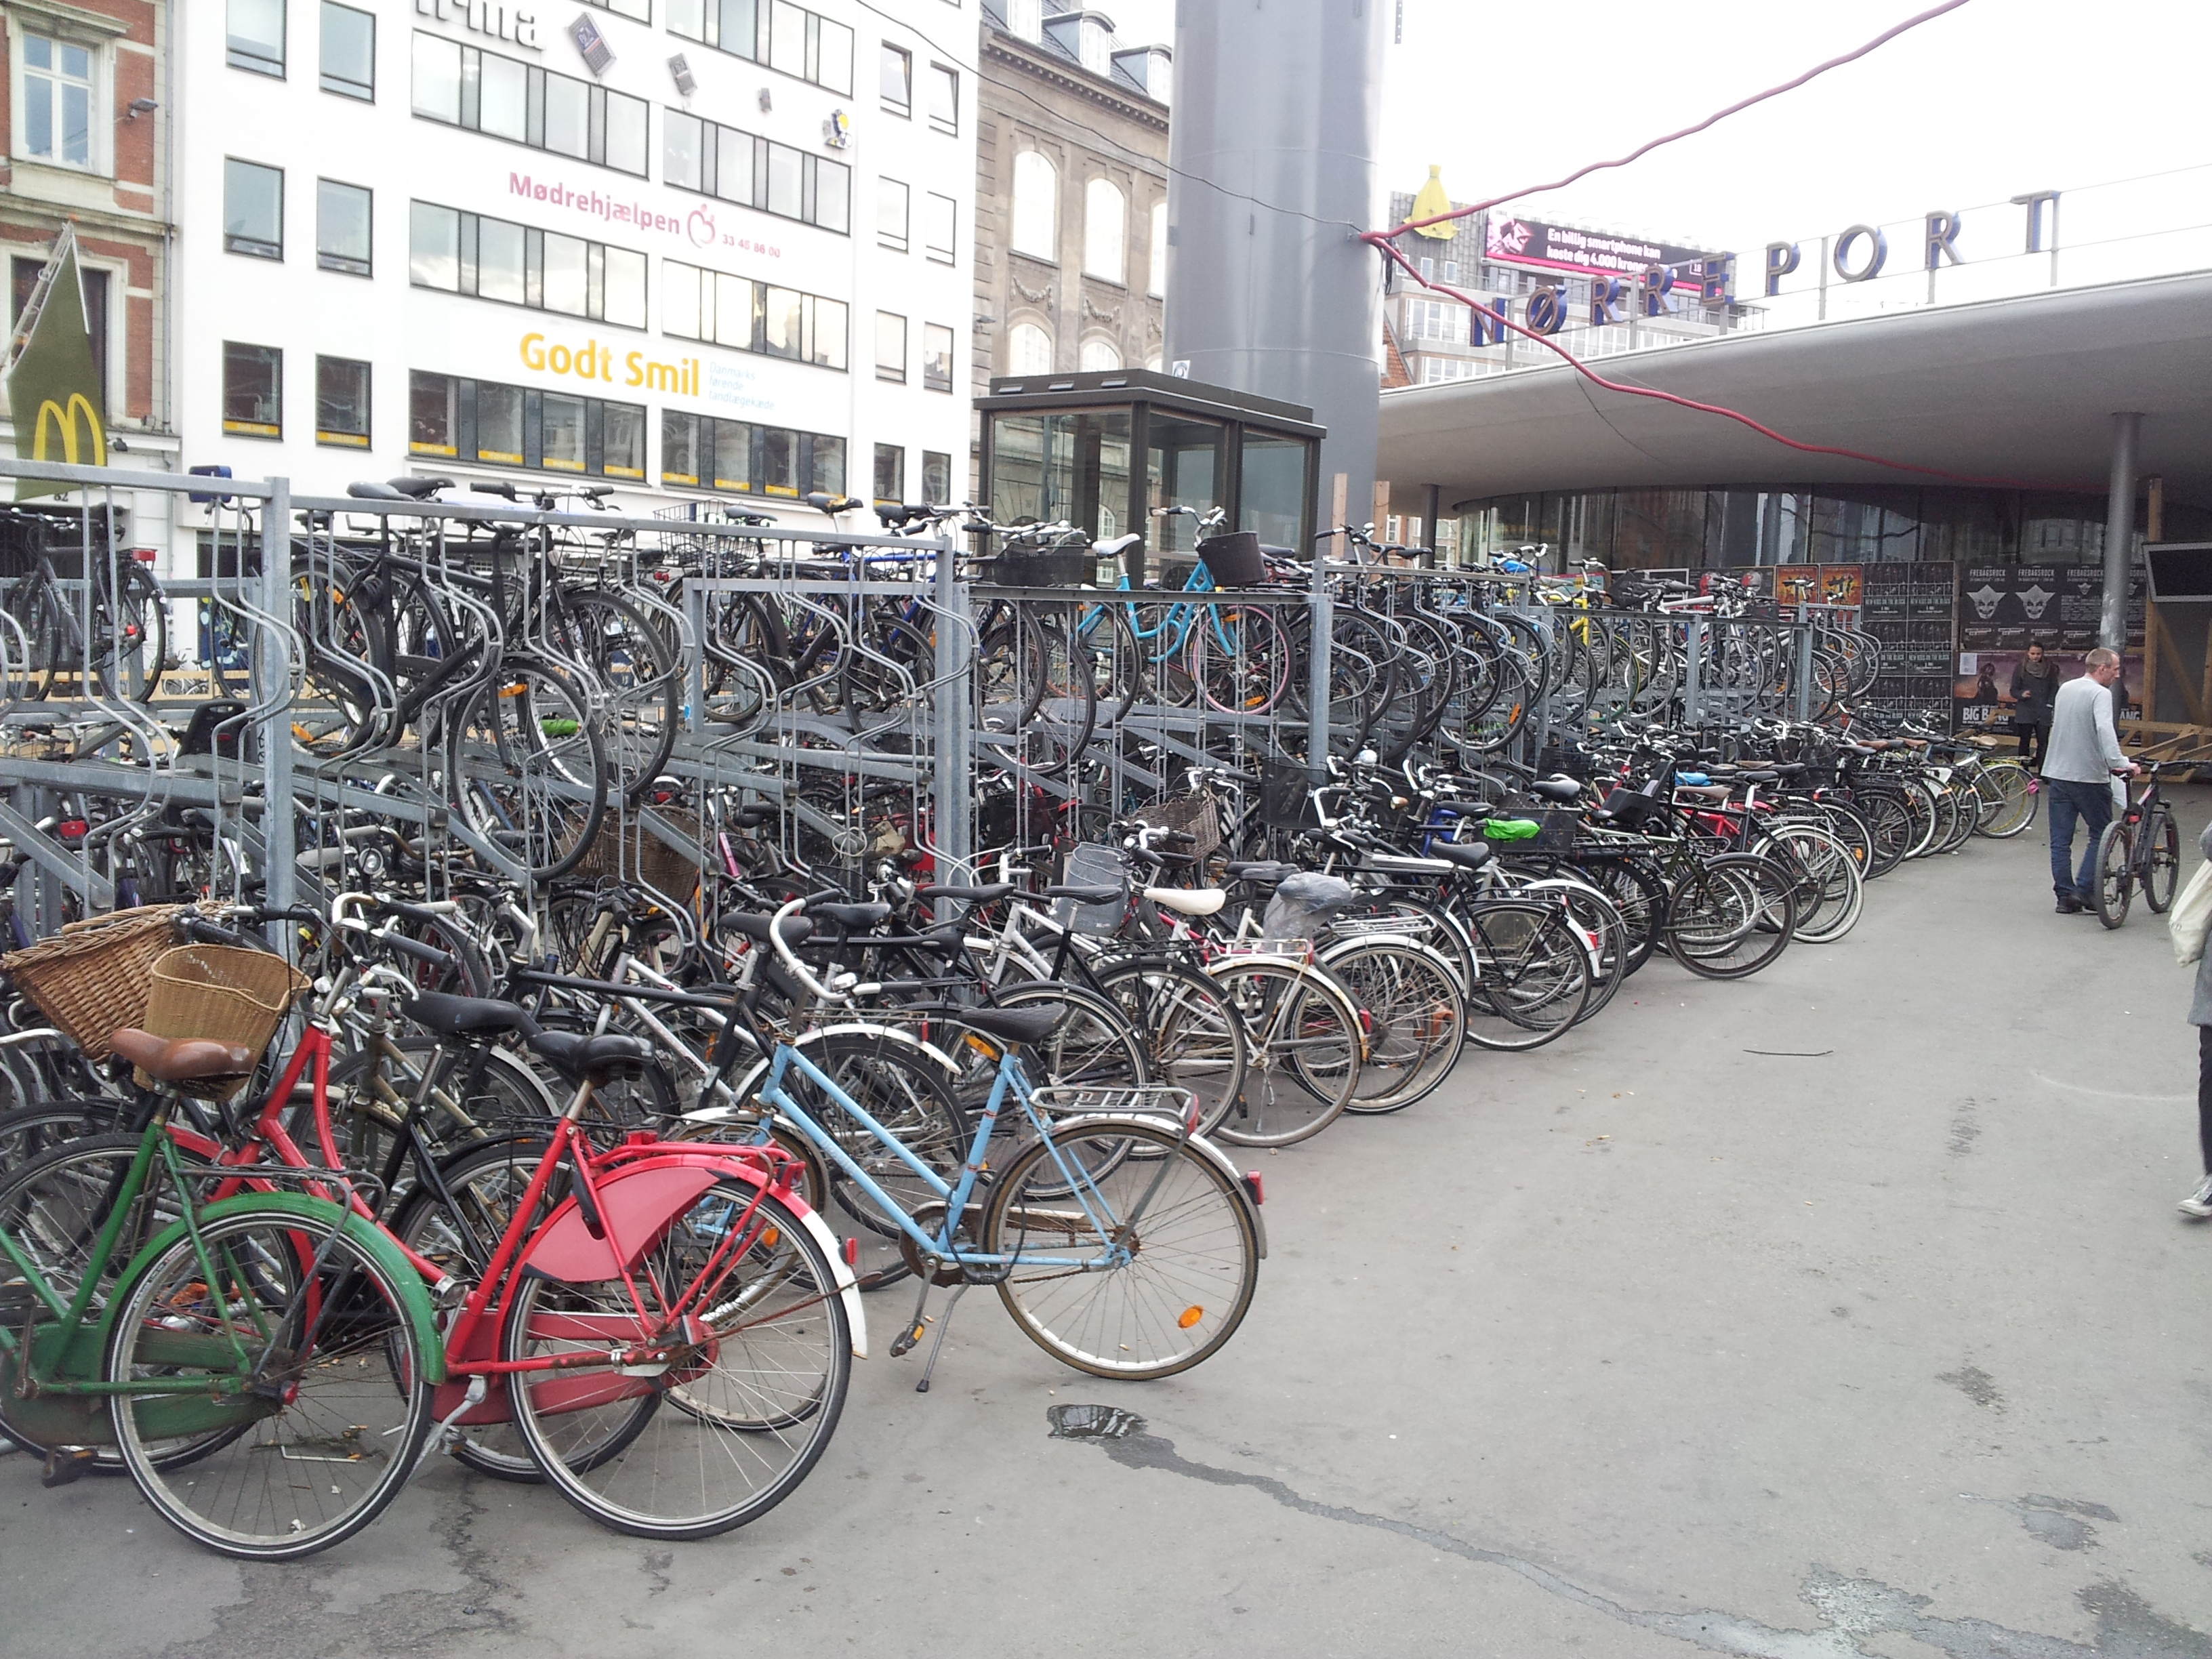 Norreport station bikes temporary parking area (21 April 2014)